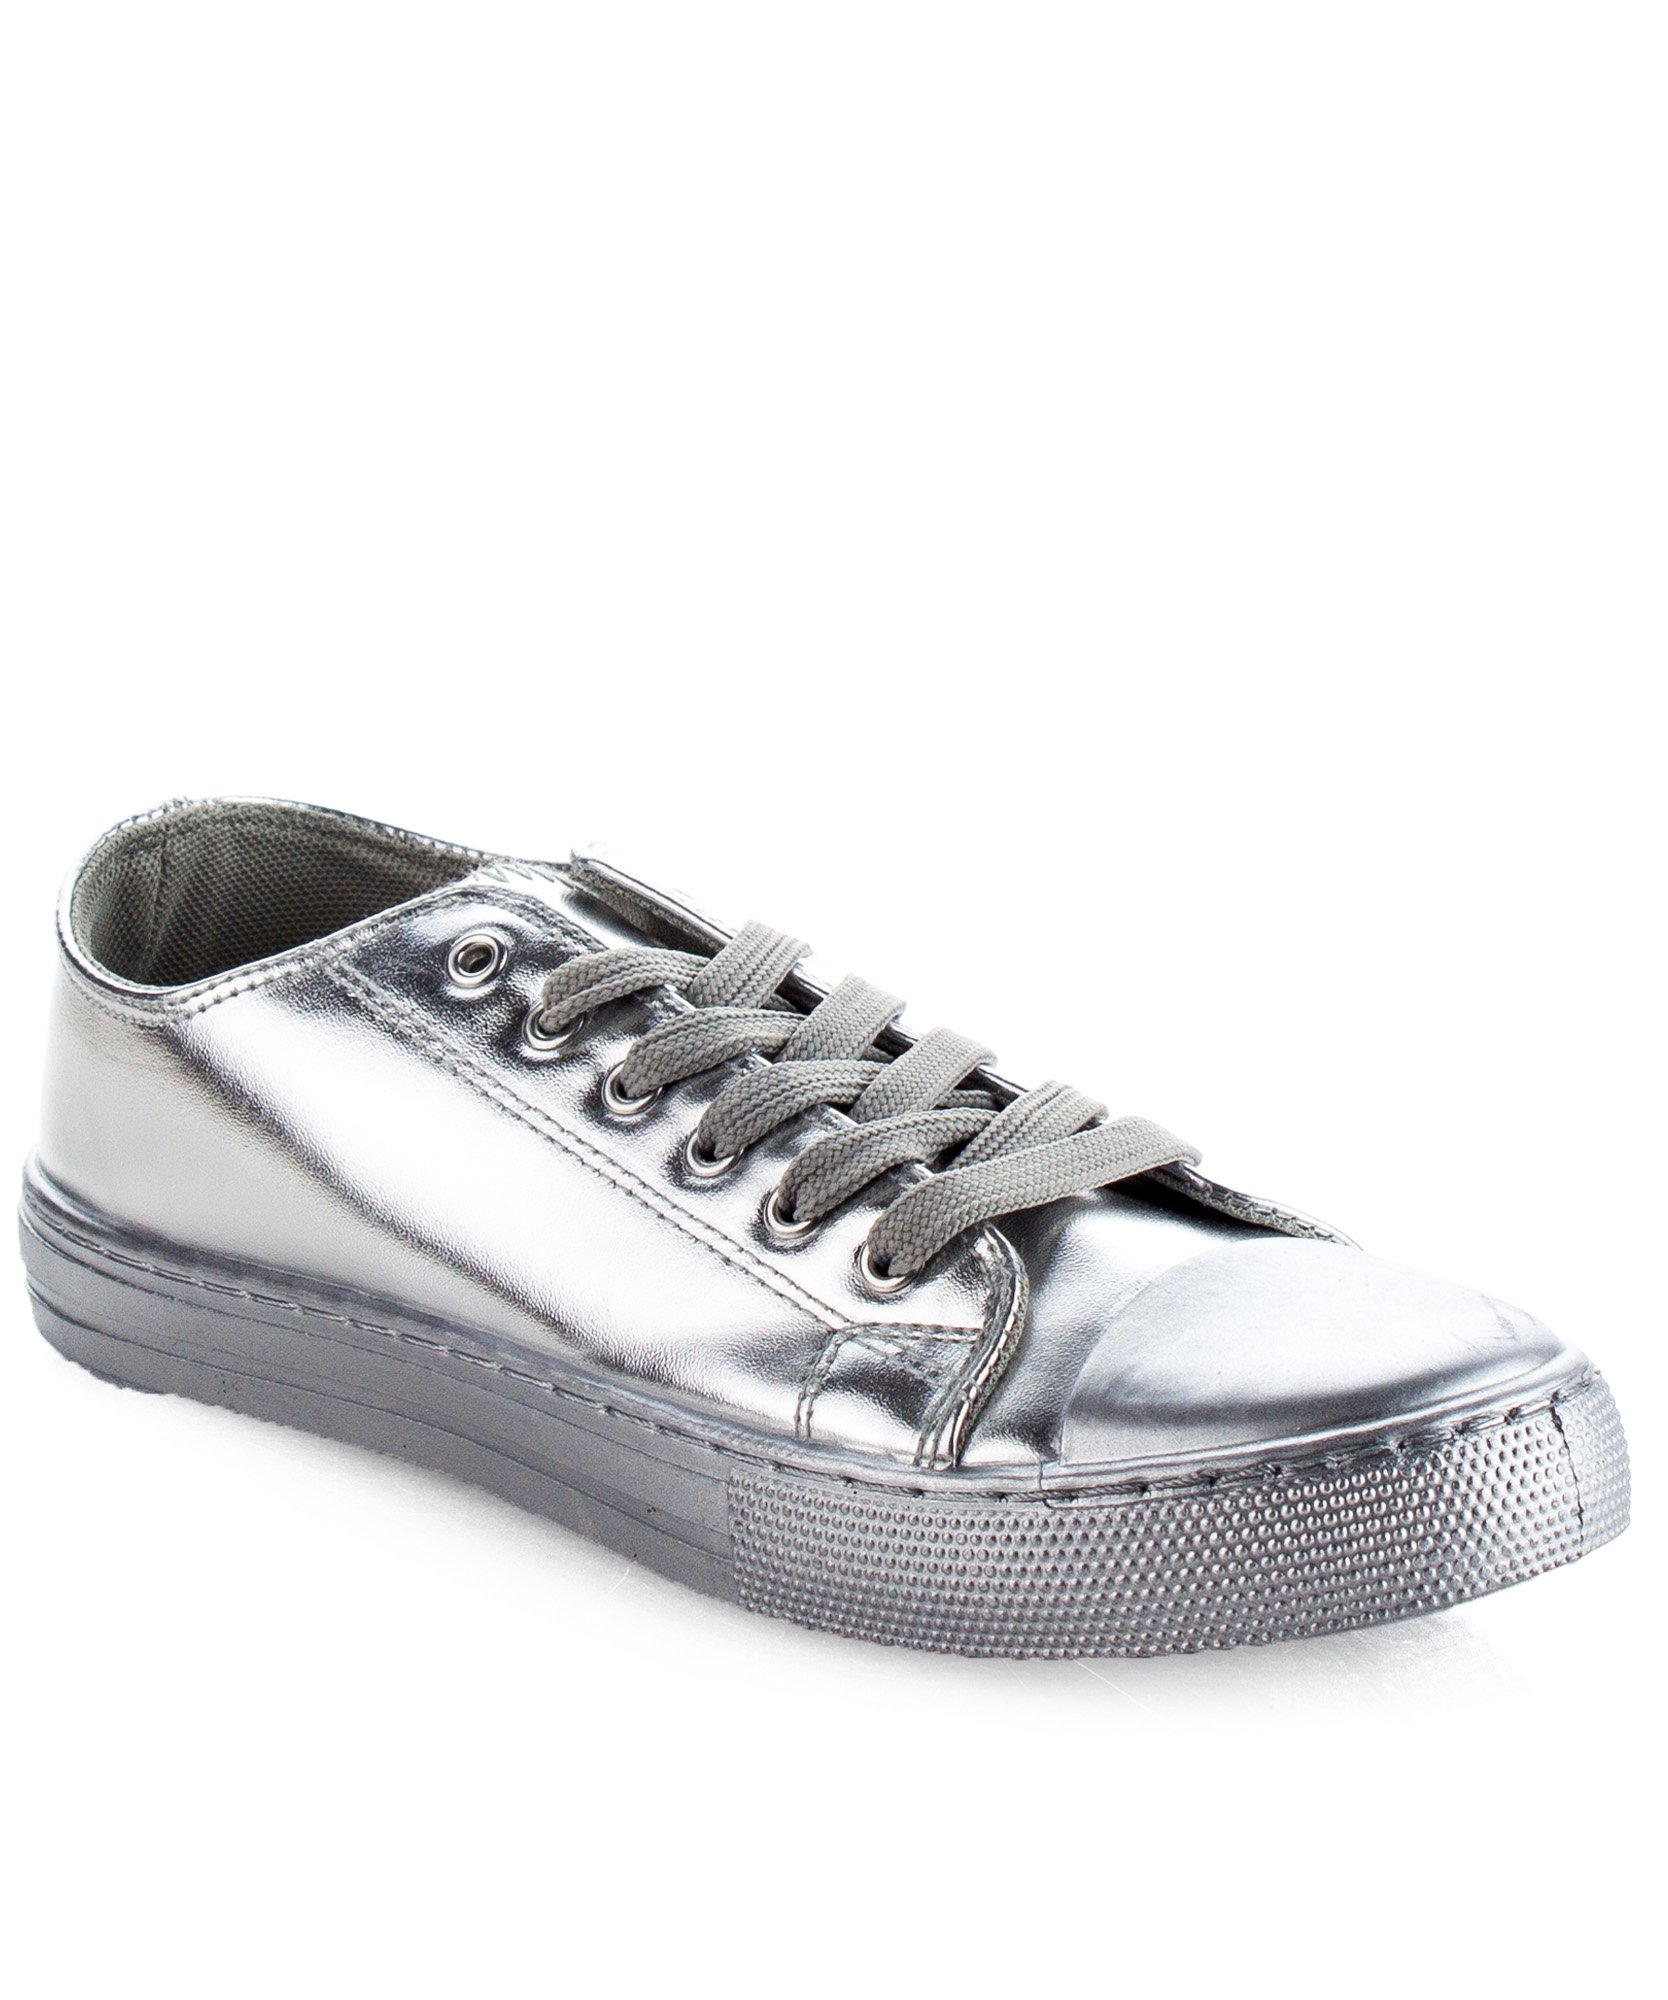 RF ROOM OF FASHION Women's Metallic Low Top Lace Up Fashion Sneakers Silver (7)